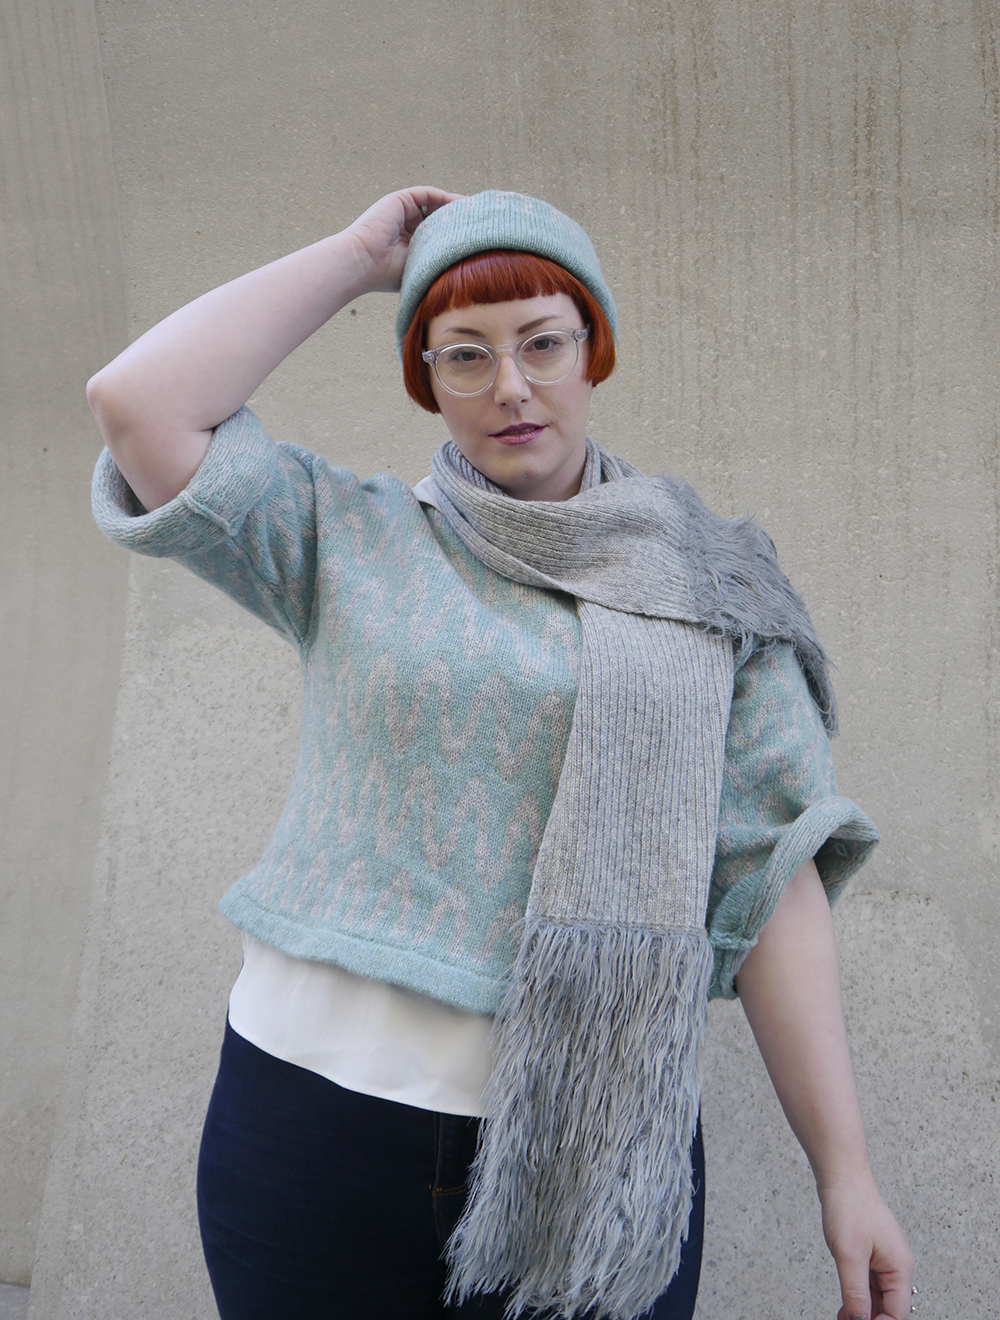 styled by Helen, Scottish blogger, Edinburgh, Edinburgh designer, independent knitwear designer, Yellow Bubble, Yellowbubble, luxury knitwear, Scottish knitwear, handmade knits, Scottish designer, matching hat and jumper, patterned jumper, Scottish street style, faux fur, casual knitwear